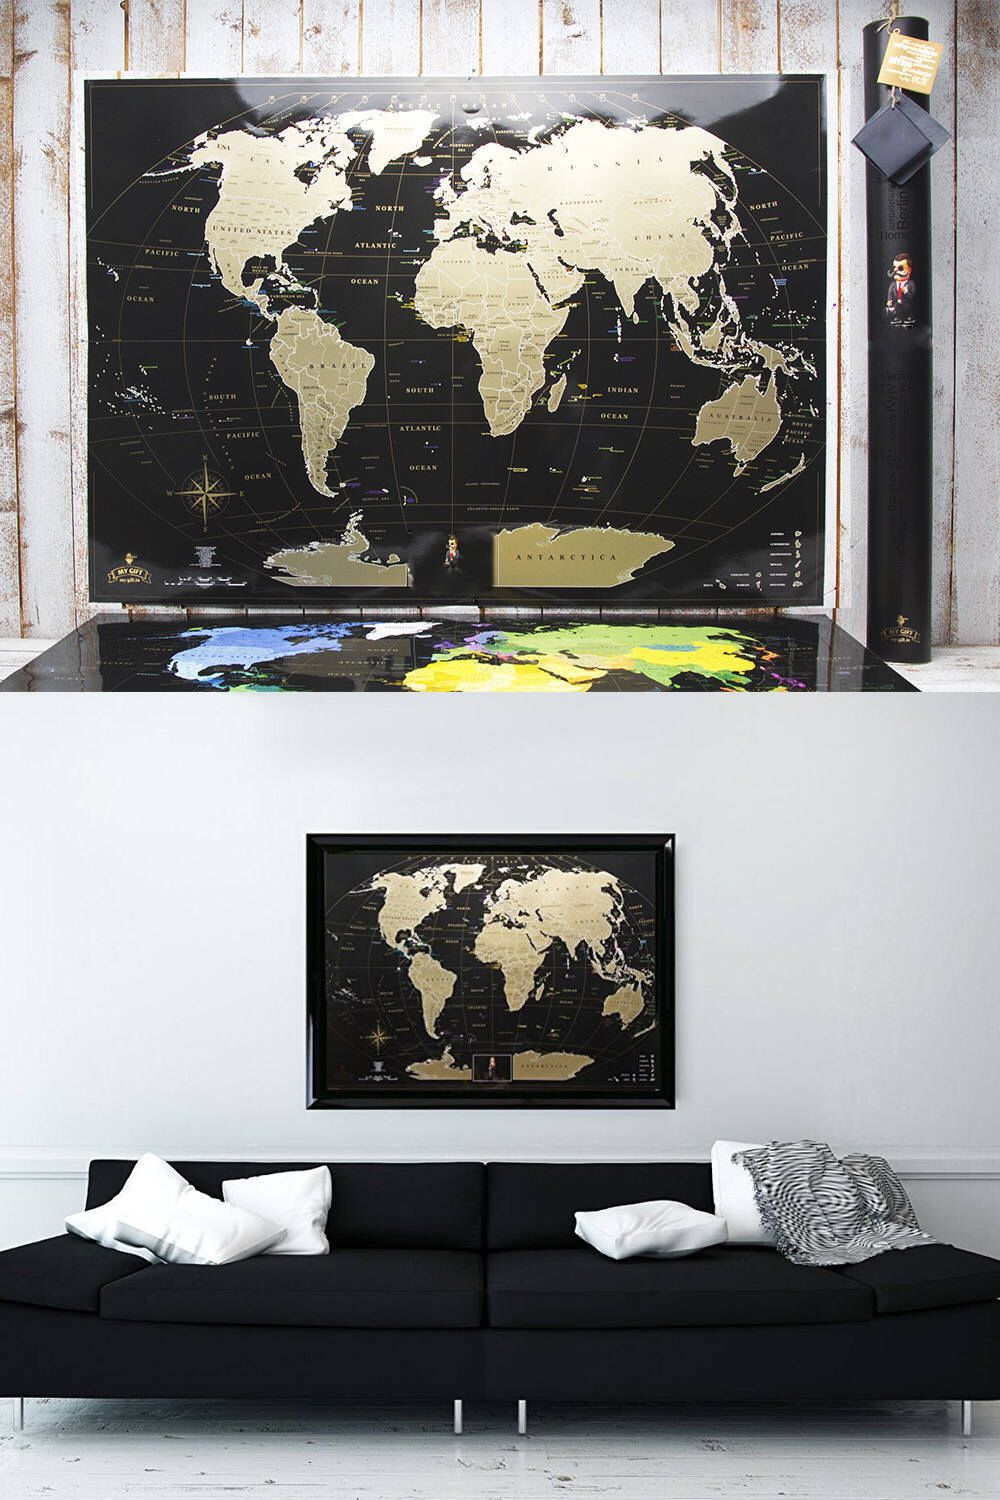 Black world map scratch off map scratch off world maps travel black world map scratch off map scratch off world maps travel map world map poster world map of the world scratch world map by blackmaps on etsy gumiabroncs Image collections